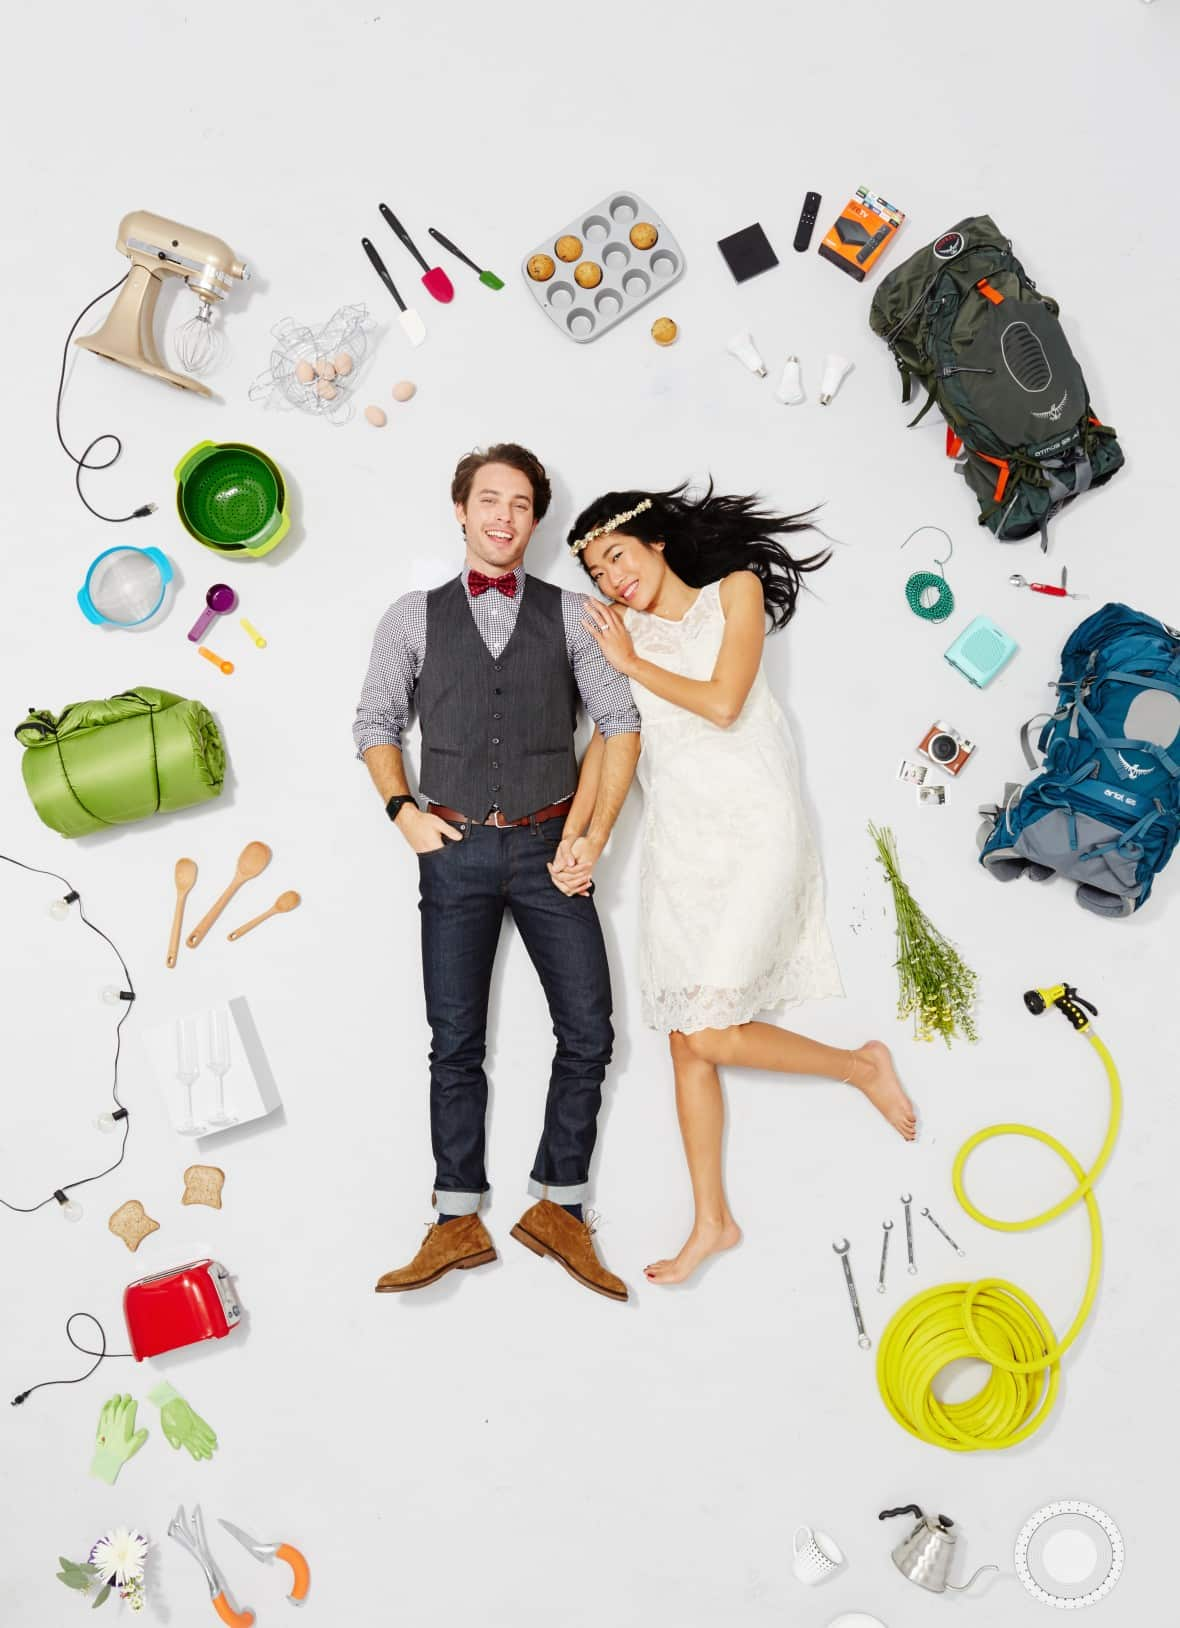 What are the perks of an Amazon Wedding Registry? Does it really live up to all the hype? We go through the benefits here!